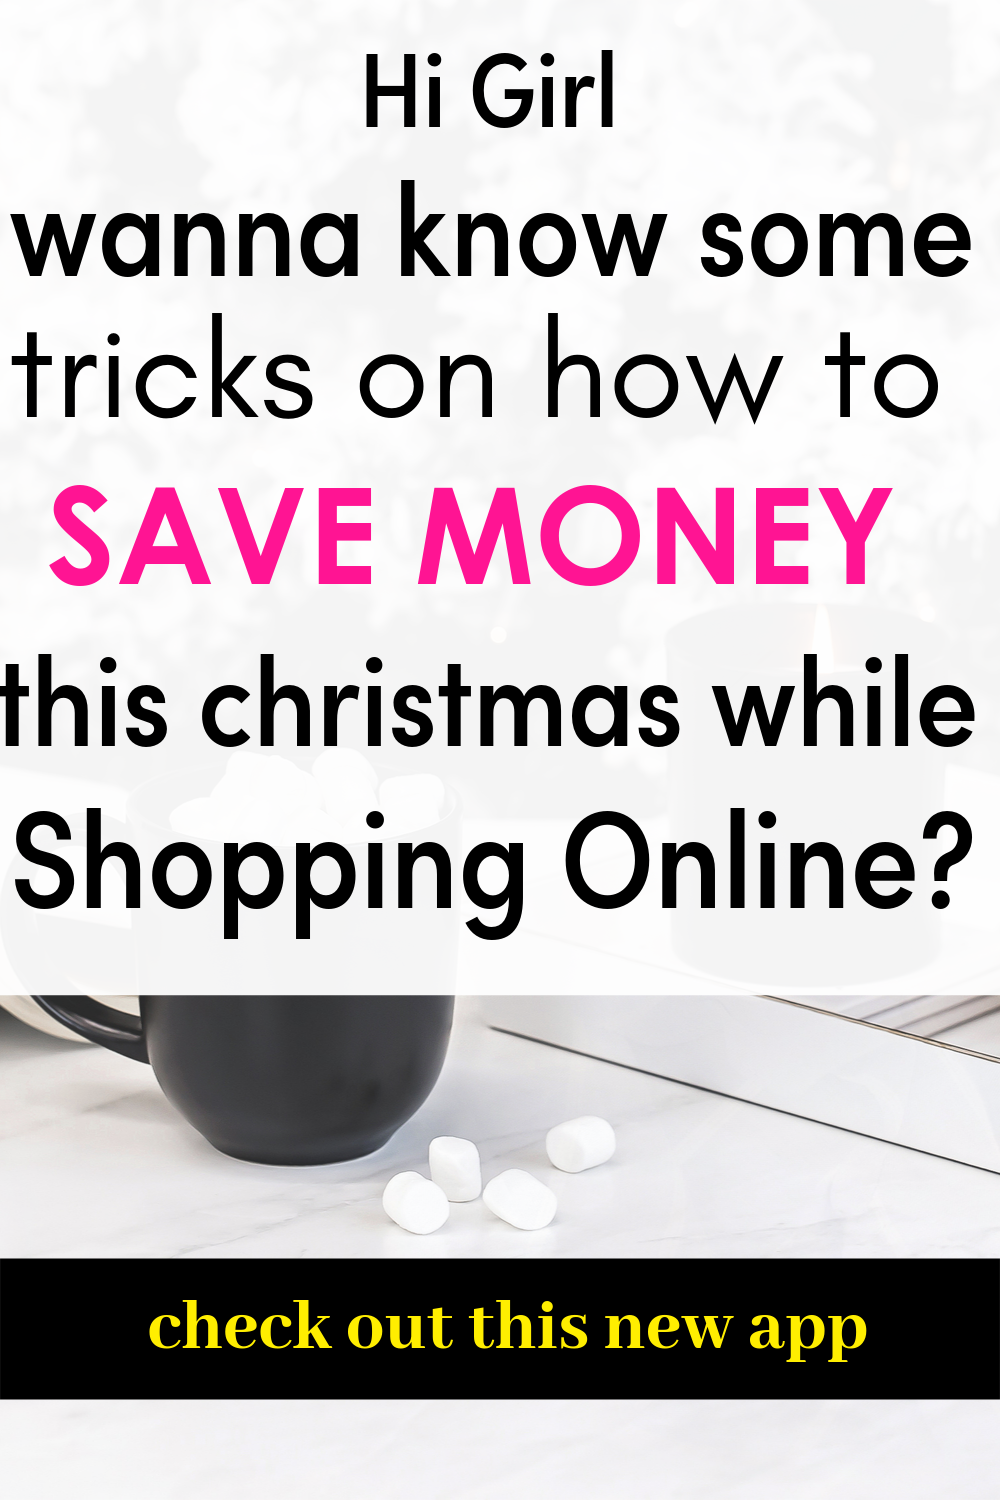 When it comes to money saving tips and ideas for your Christmas shopping list one can get overwhelmed on which website is the best to save money especially with Christmas gifts. But there is one money-saving app in iPhone that has been for online shopping. this app has all your favourite retail shops. Sign up now and get instant Christmas gifts discounts. #gifts#christmas#Christmasgifts #giftguide #giftideas #savemoney #money #debt #cheap #